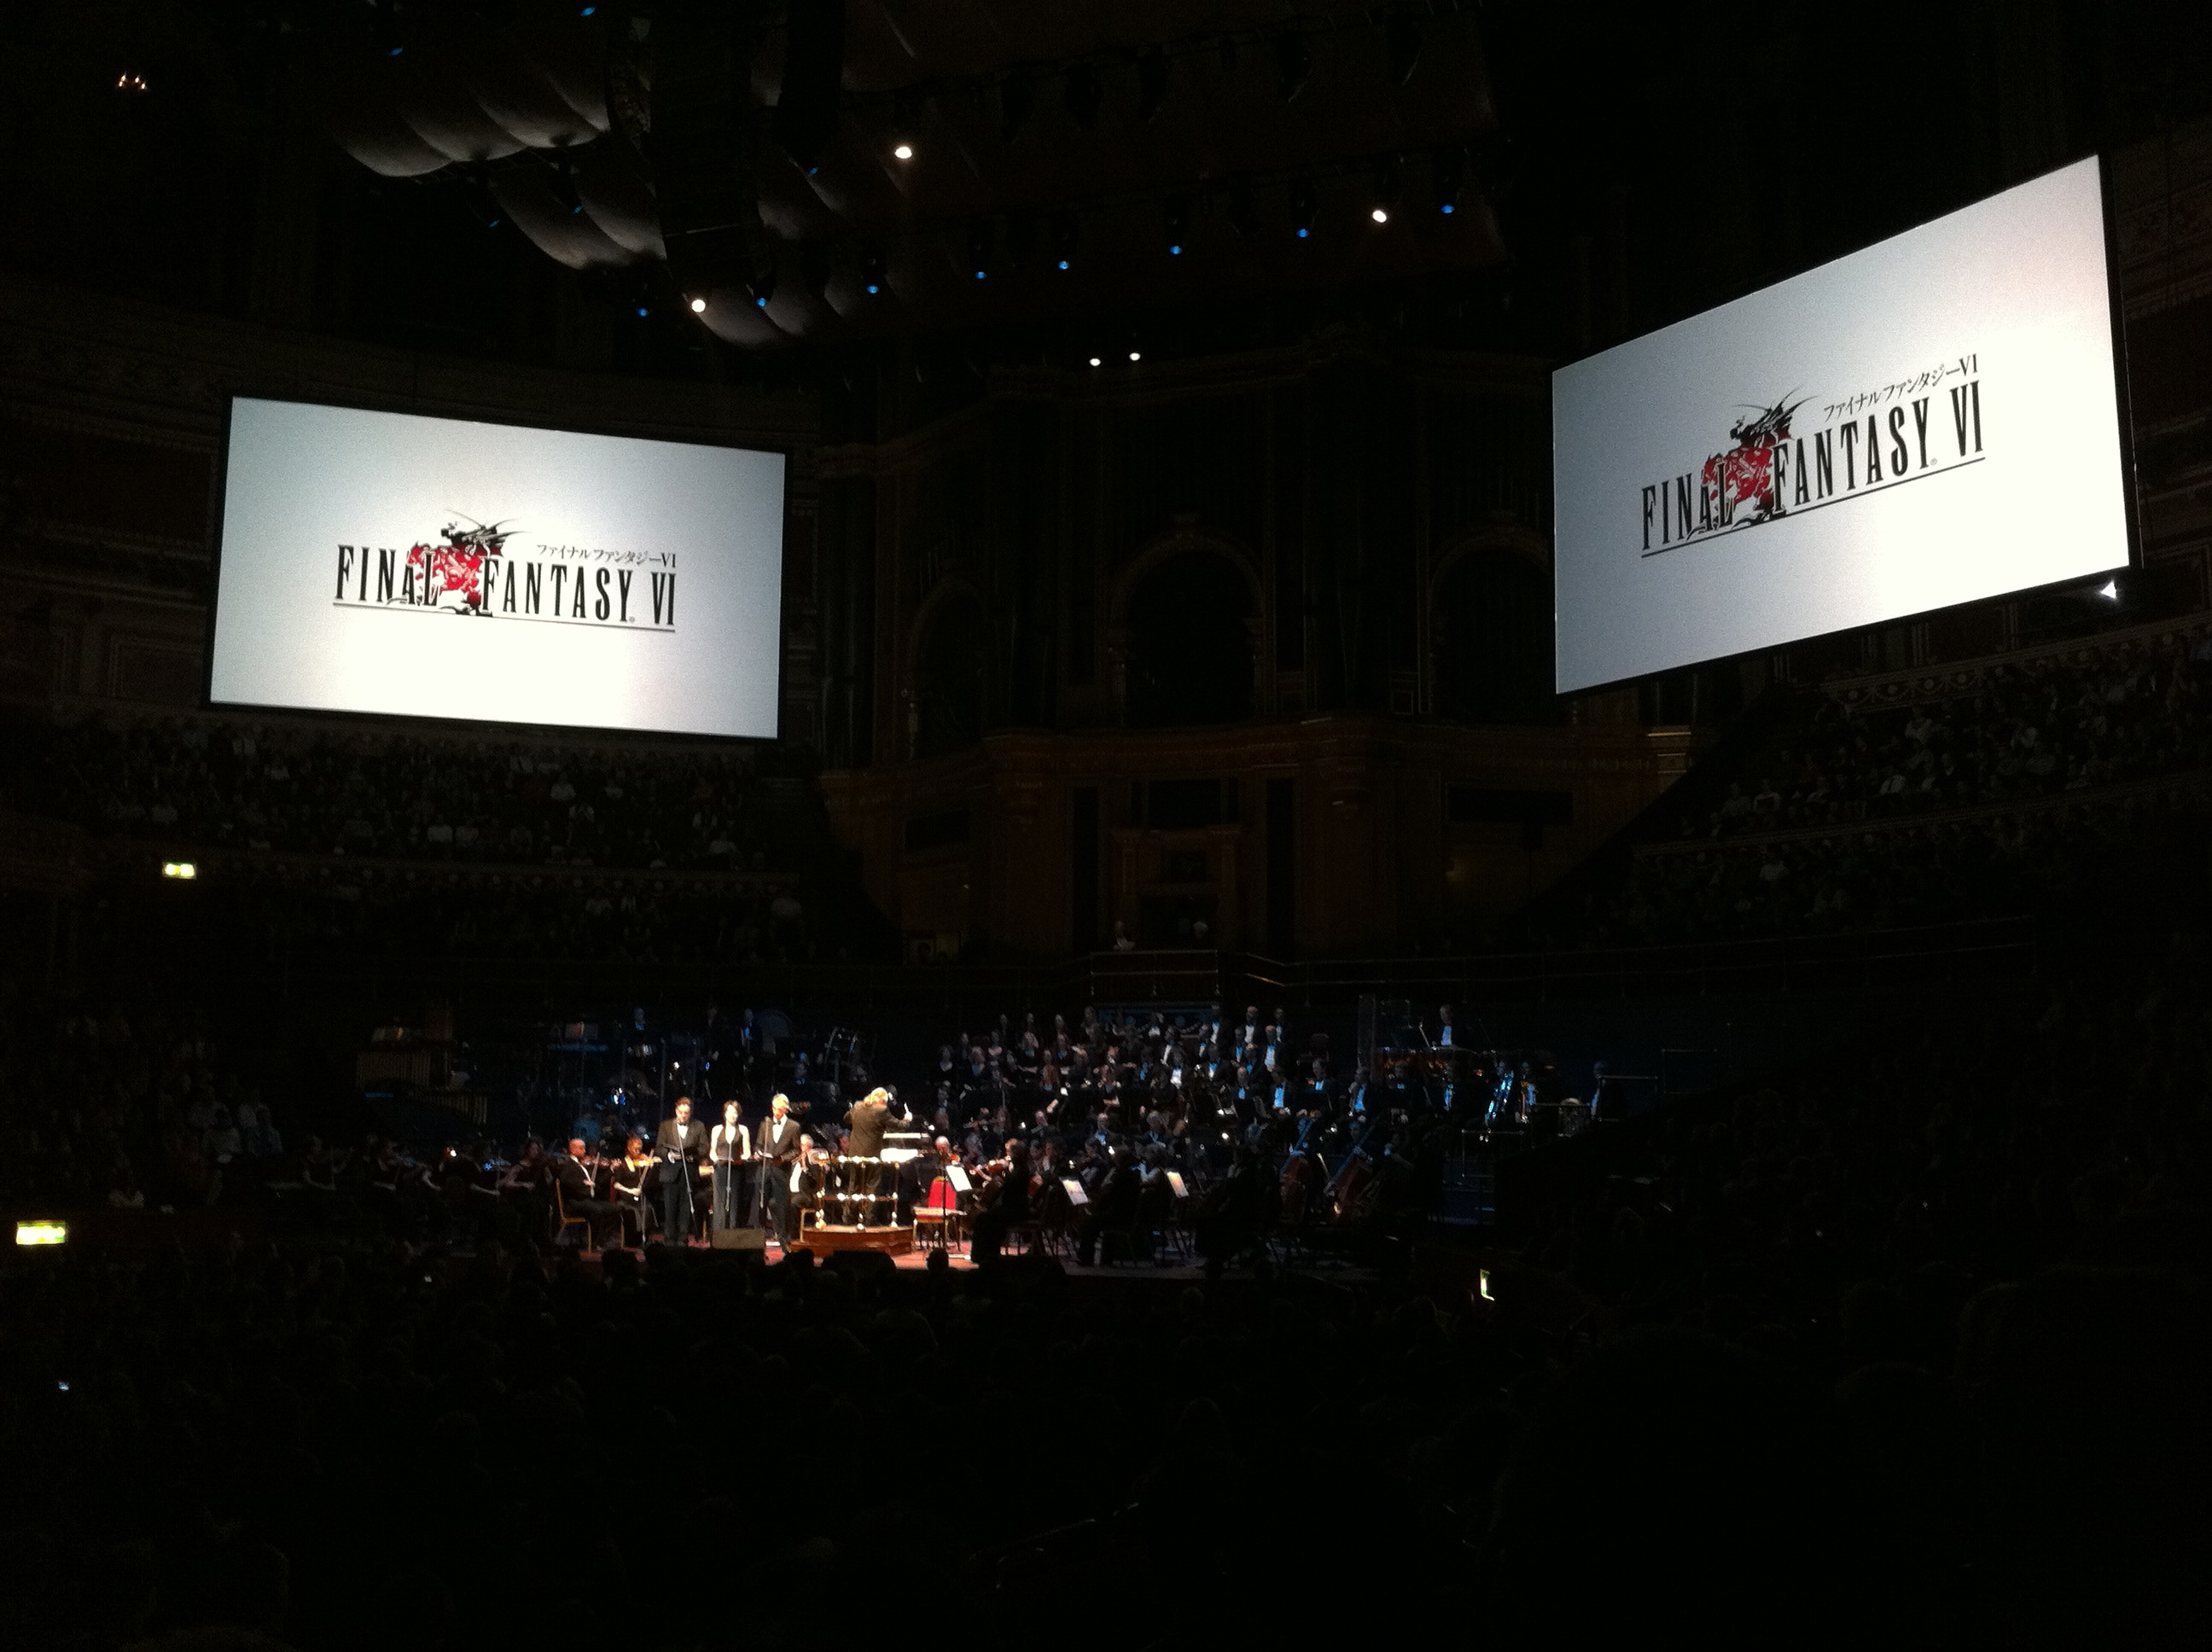 Concierto Distant Worlds en el Royal Albert Hall de Londres, 2011